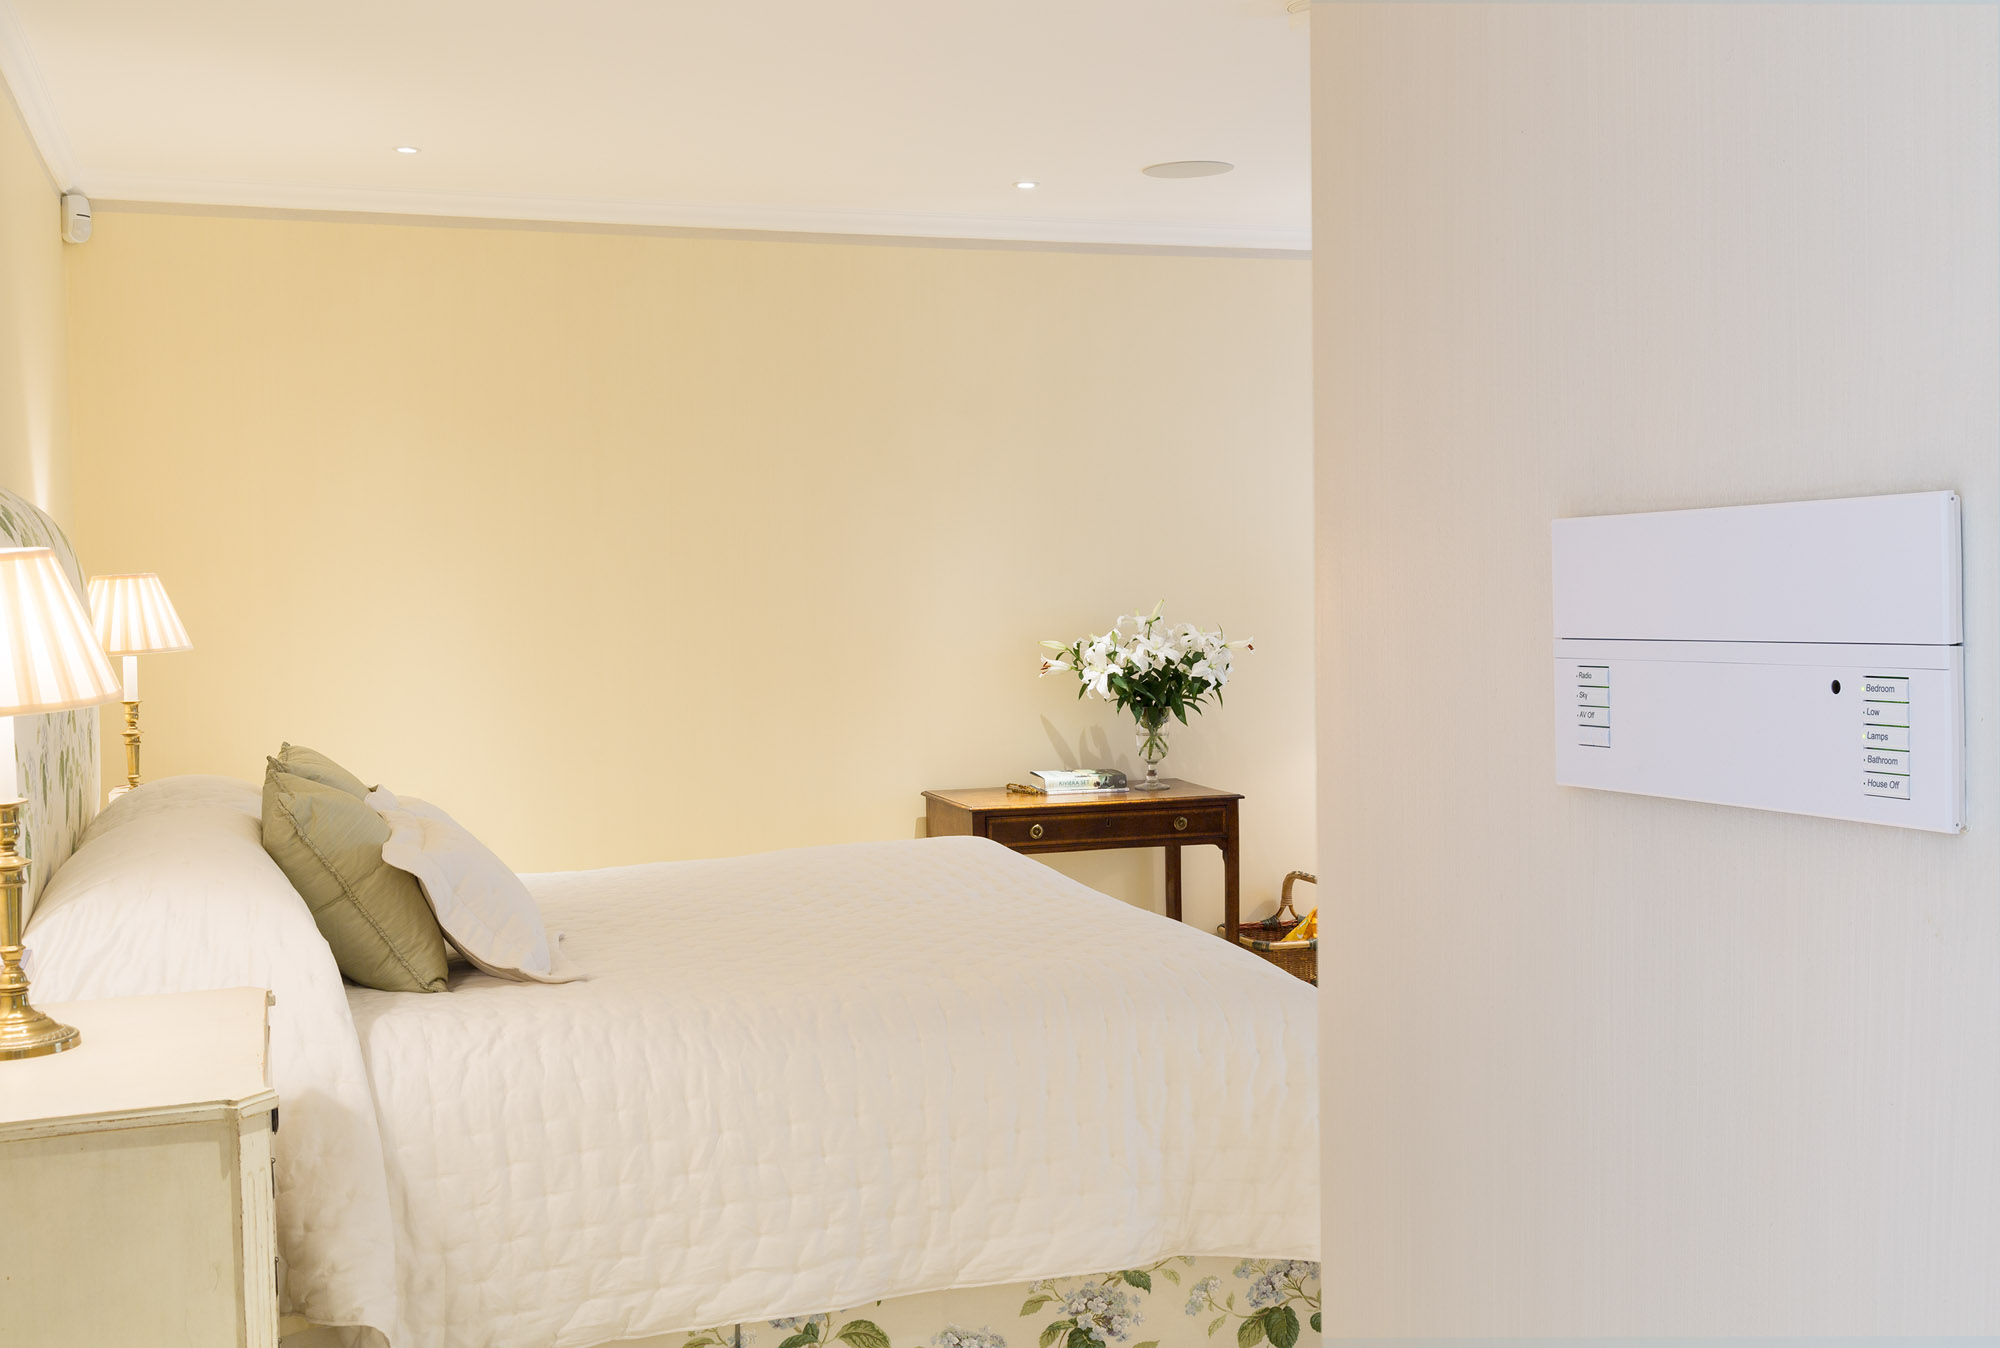 The  Lutron  Wall Panel allows quick selection of lighting scenes for the Bedroom, Dressing Room and En-suite including a H ouse Off  button.  The buttons are engraved for easy selection and also allow control of the integrated  Sonos  Audio system.